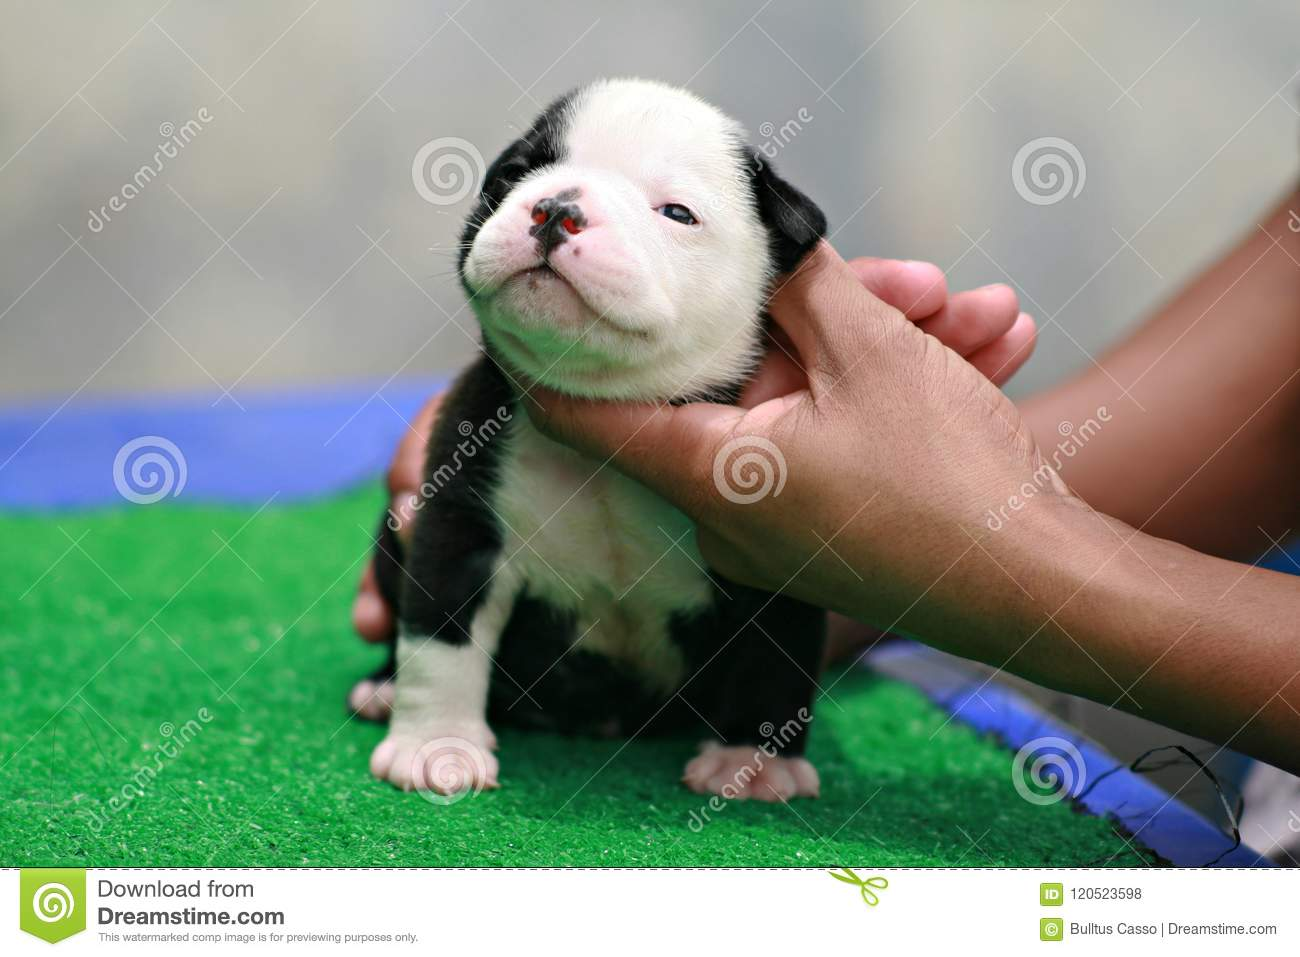 Black And White American Bully Puppy 1 Month Standing On Grass Stock